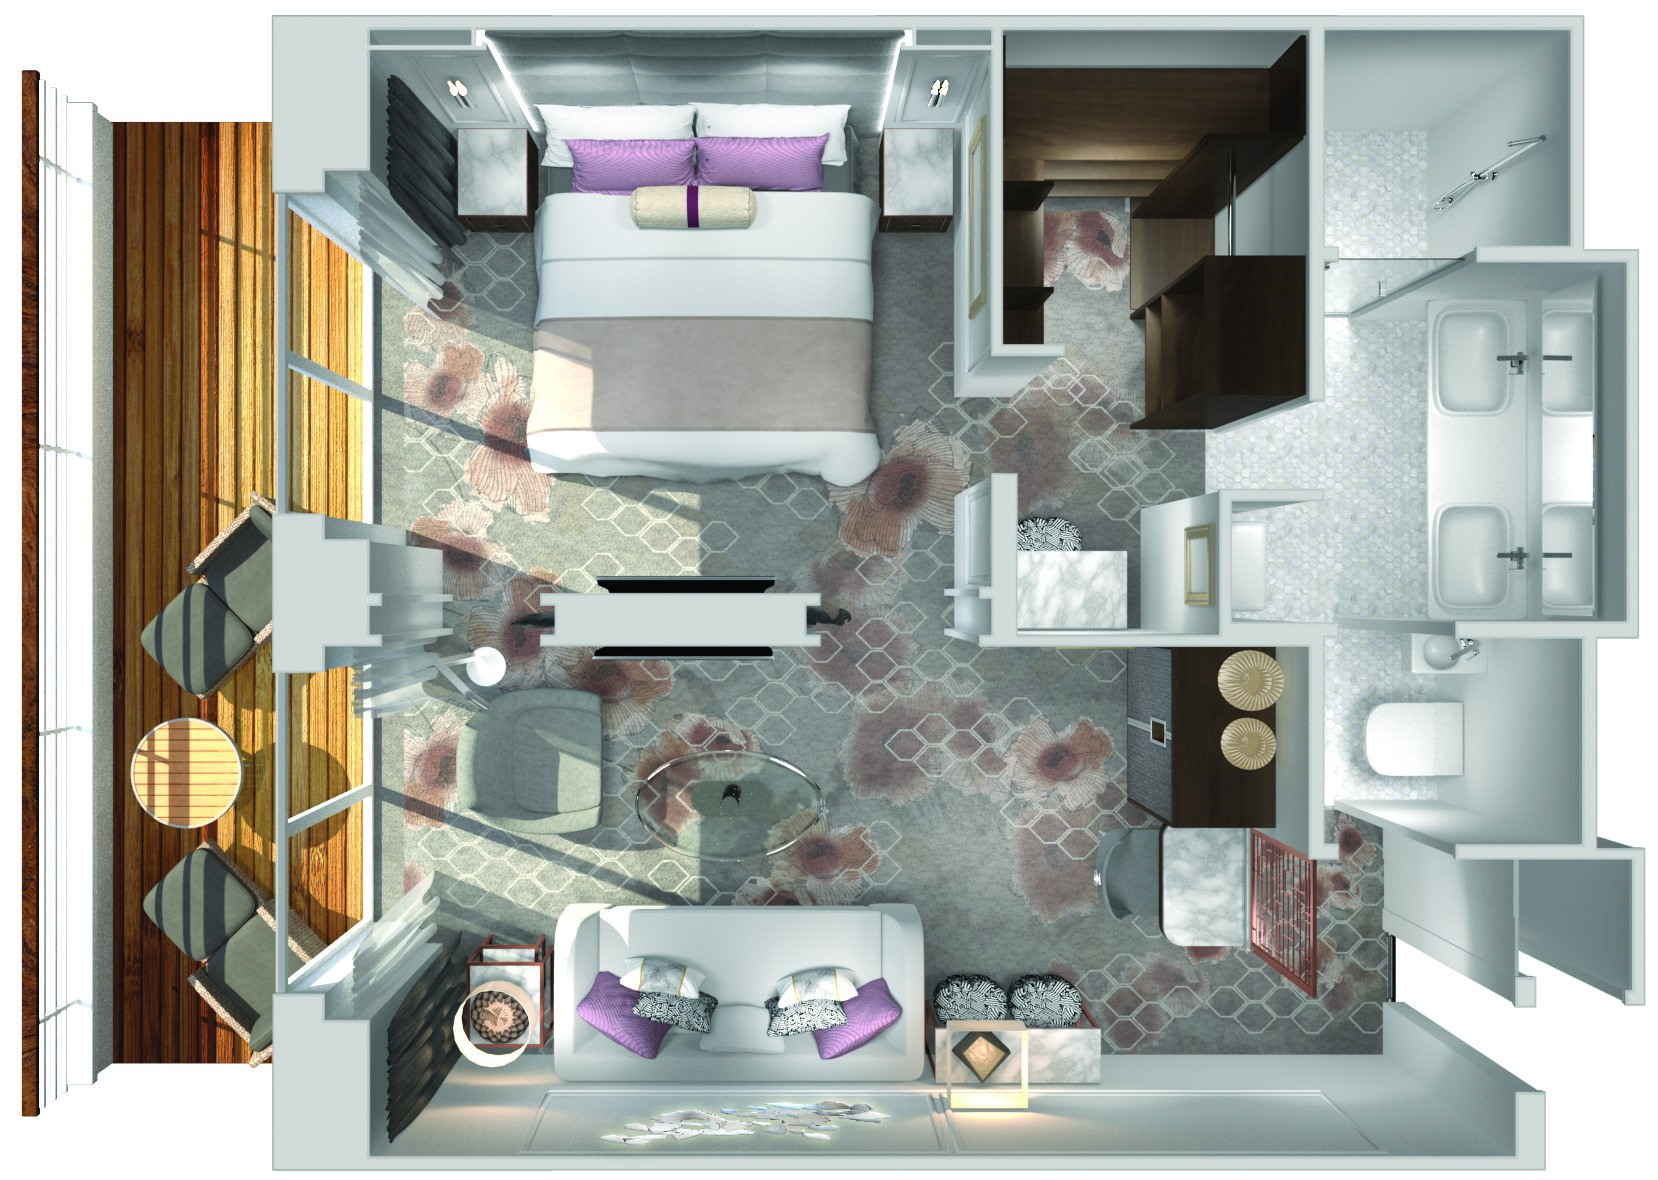 Seabreeze Penthouse Suite - Crystal Symphony - Seabreeze Penthouse Suite SP - Crystal Symphony - Bild 5 - Grundriss Thumb